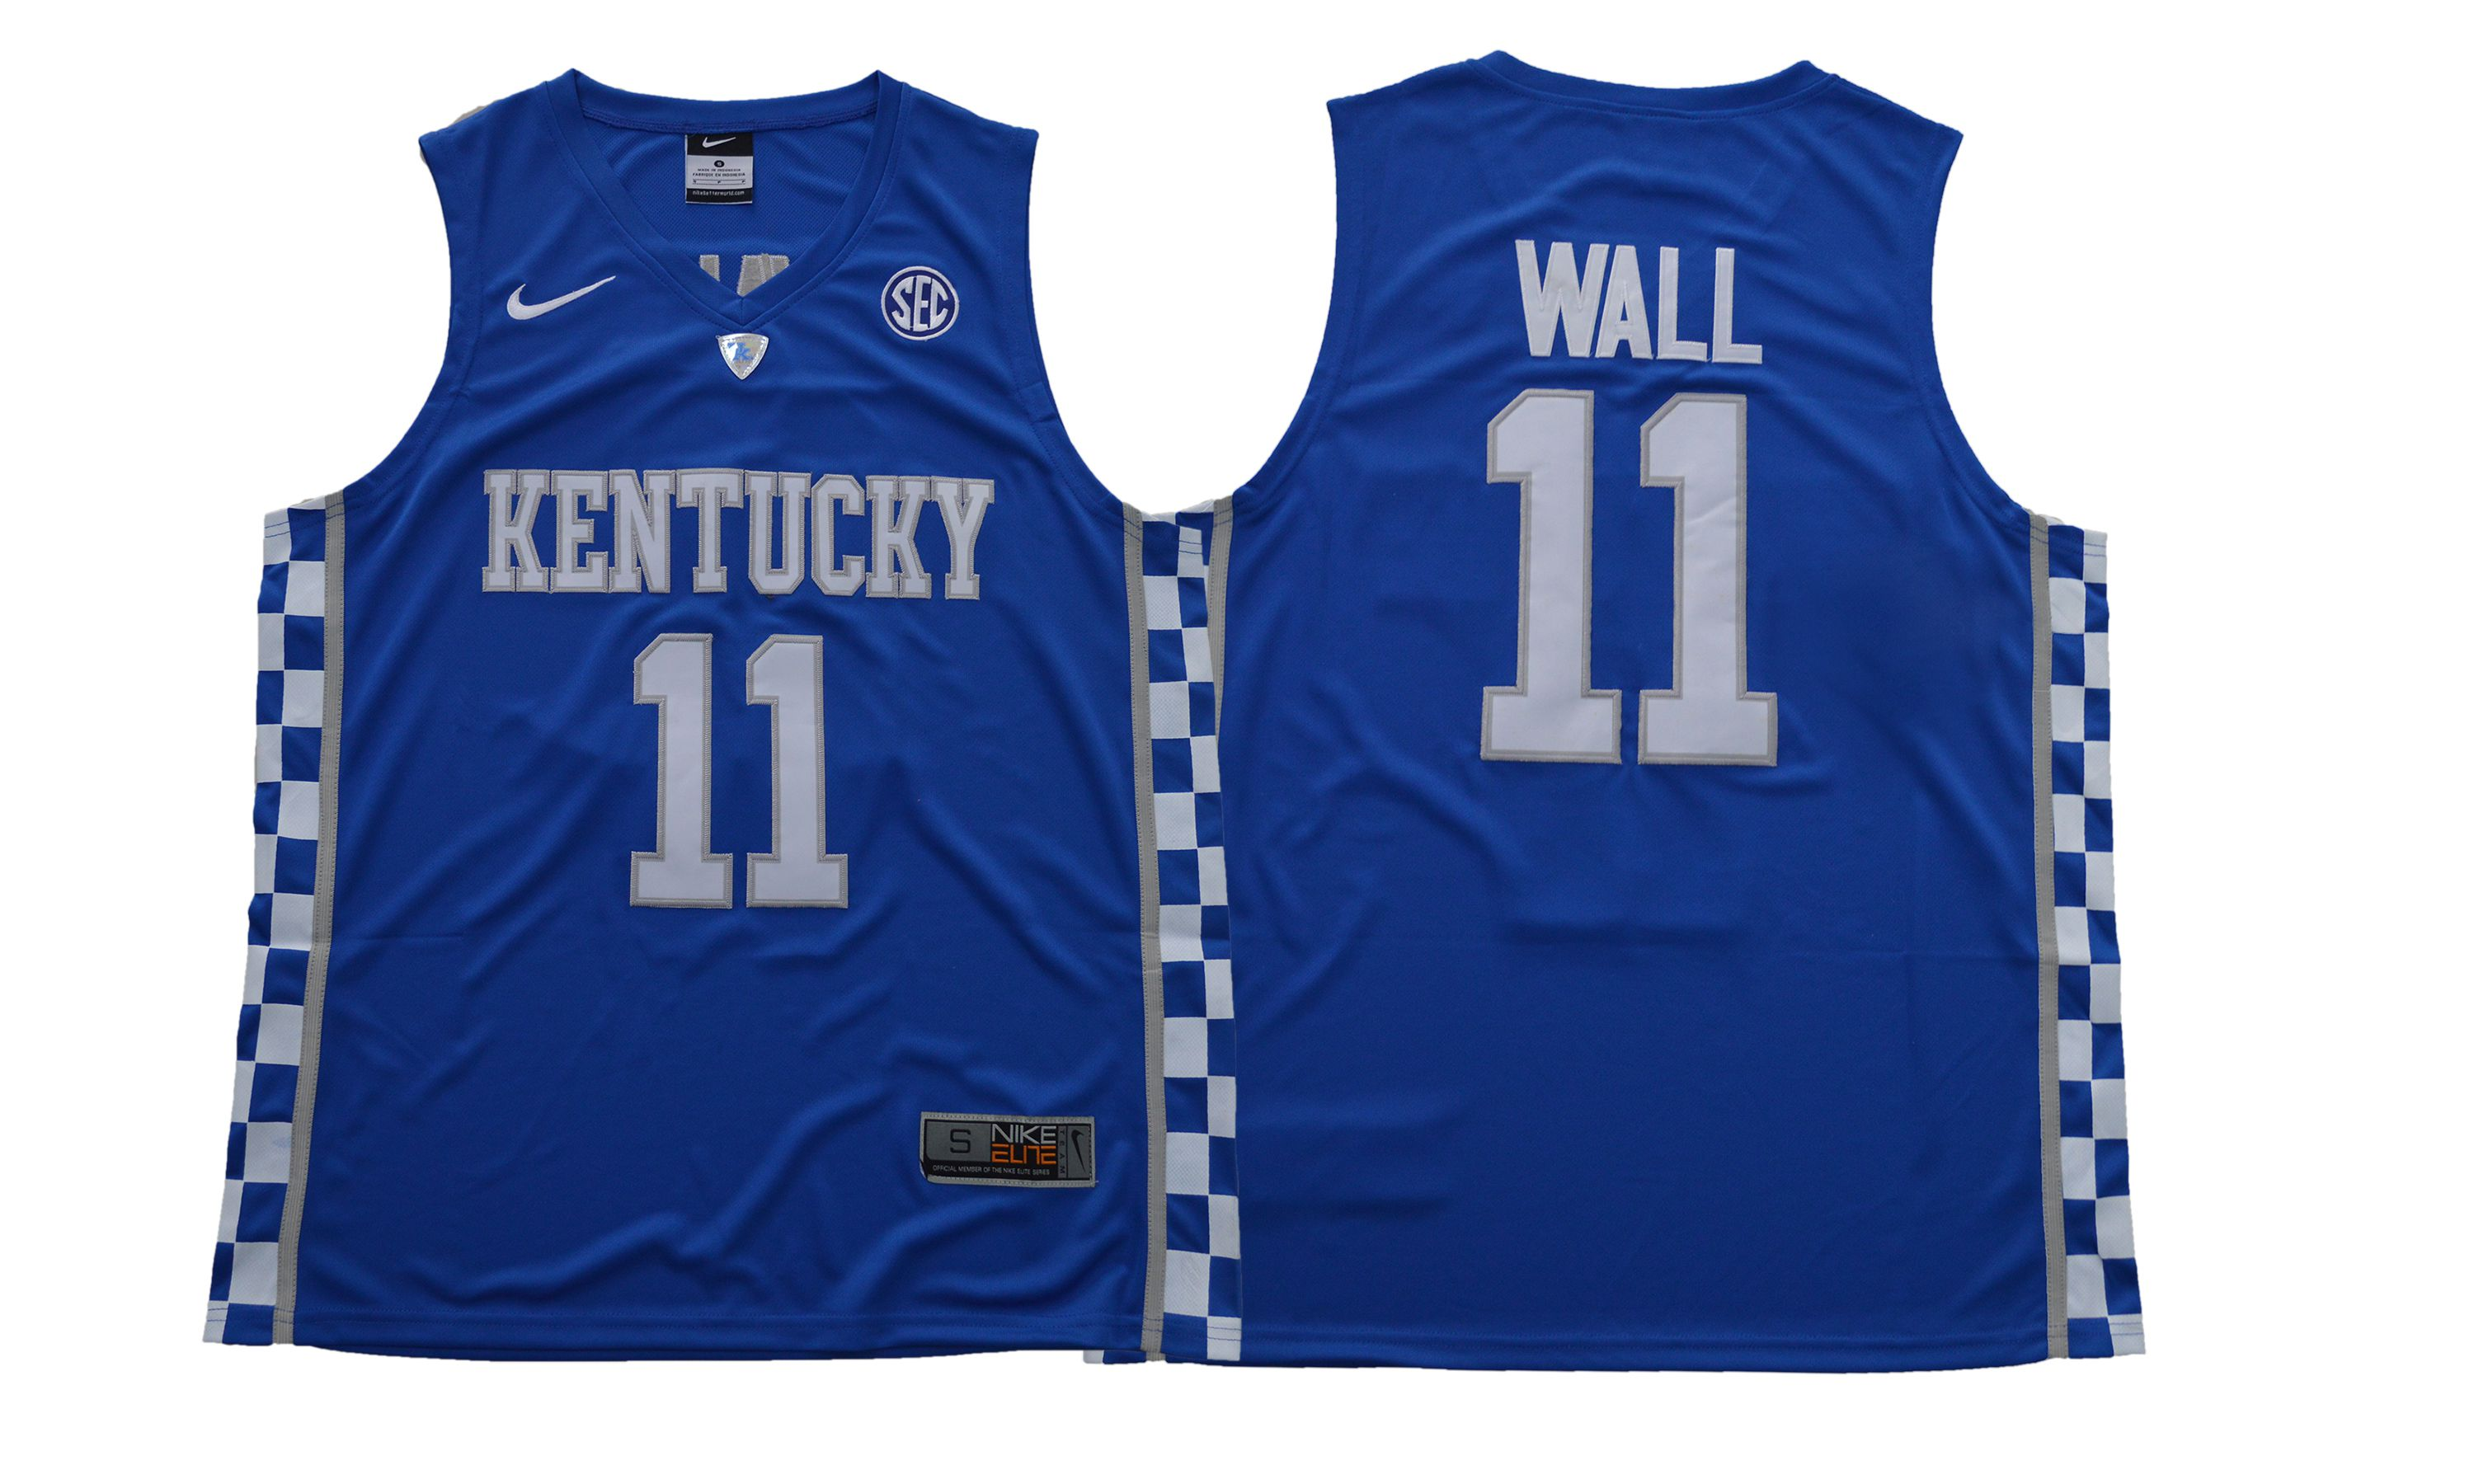 Men Kentucky Wildcats 11 Wall Blue NBA NCAA Jerseys